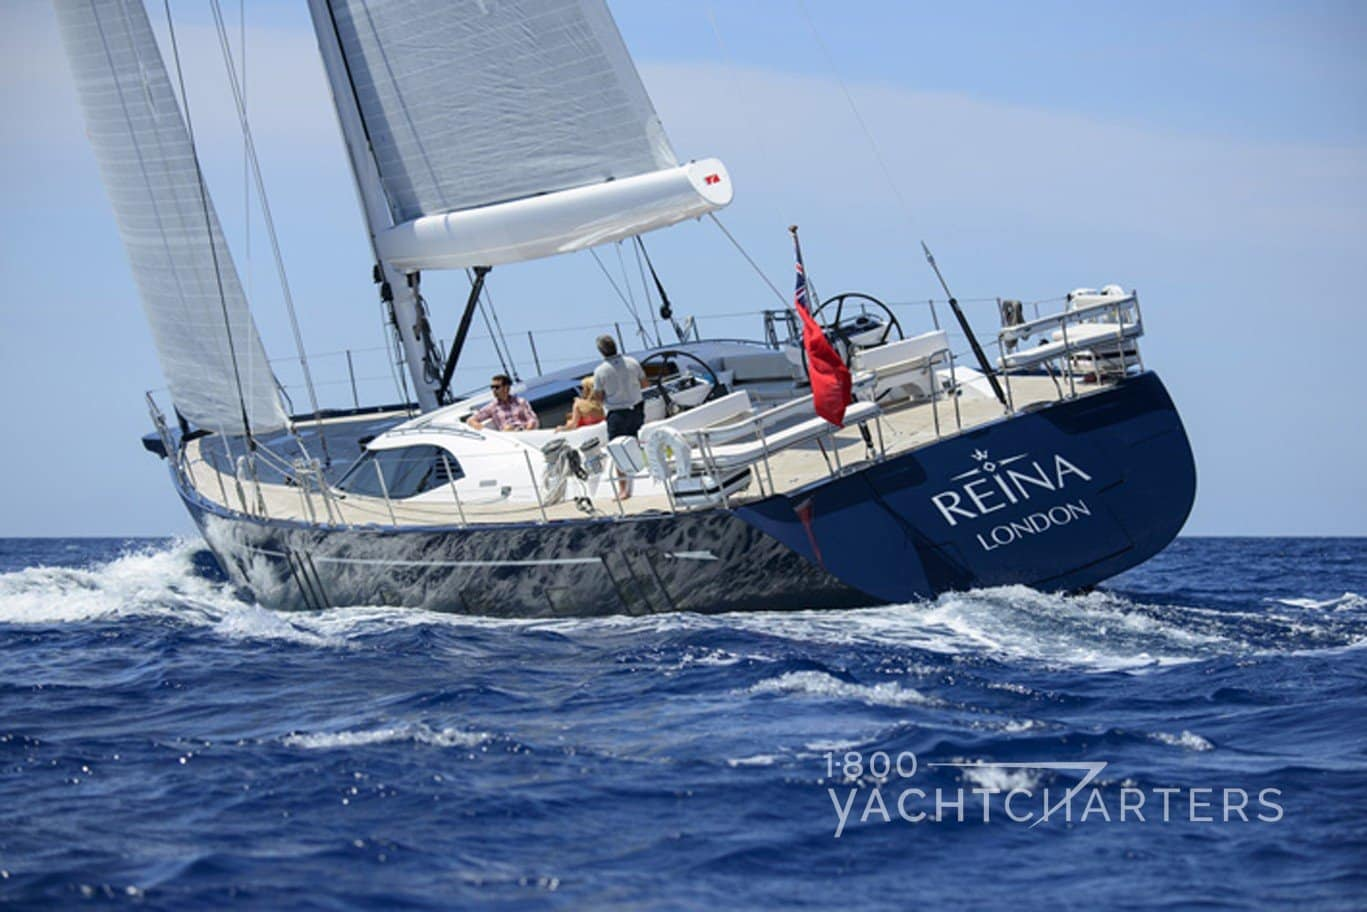 REINA Oyster sailing yacht blue hull and wooden deck running - view from back